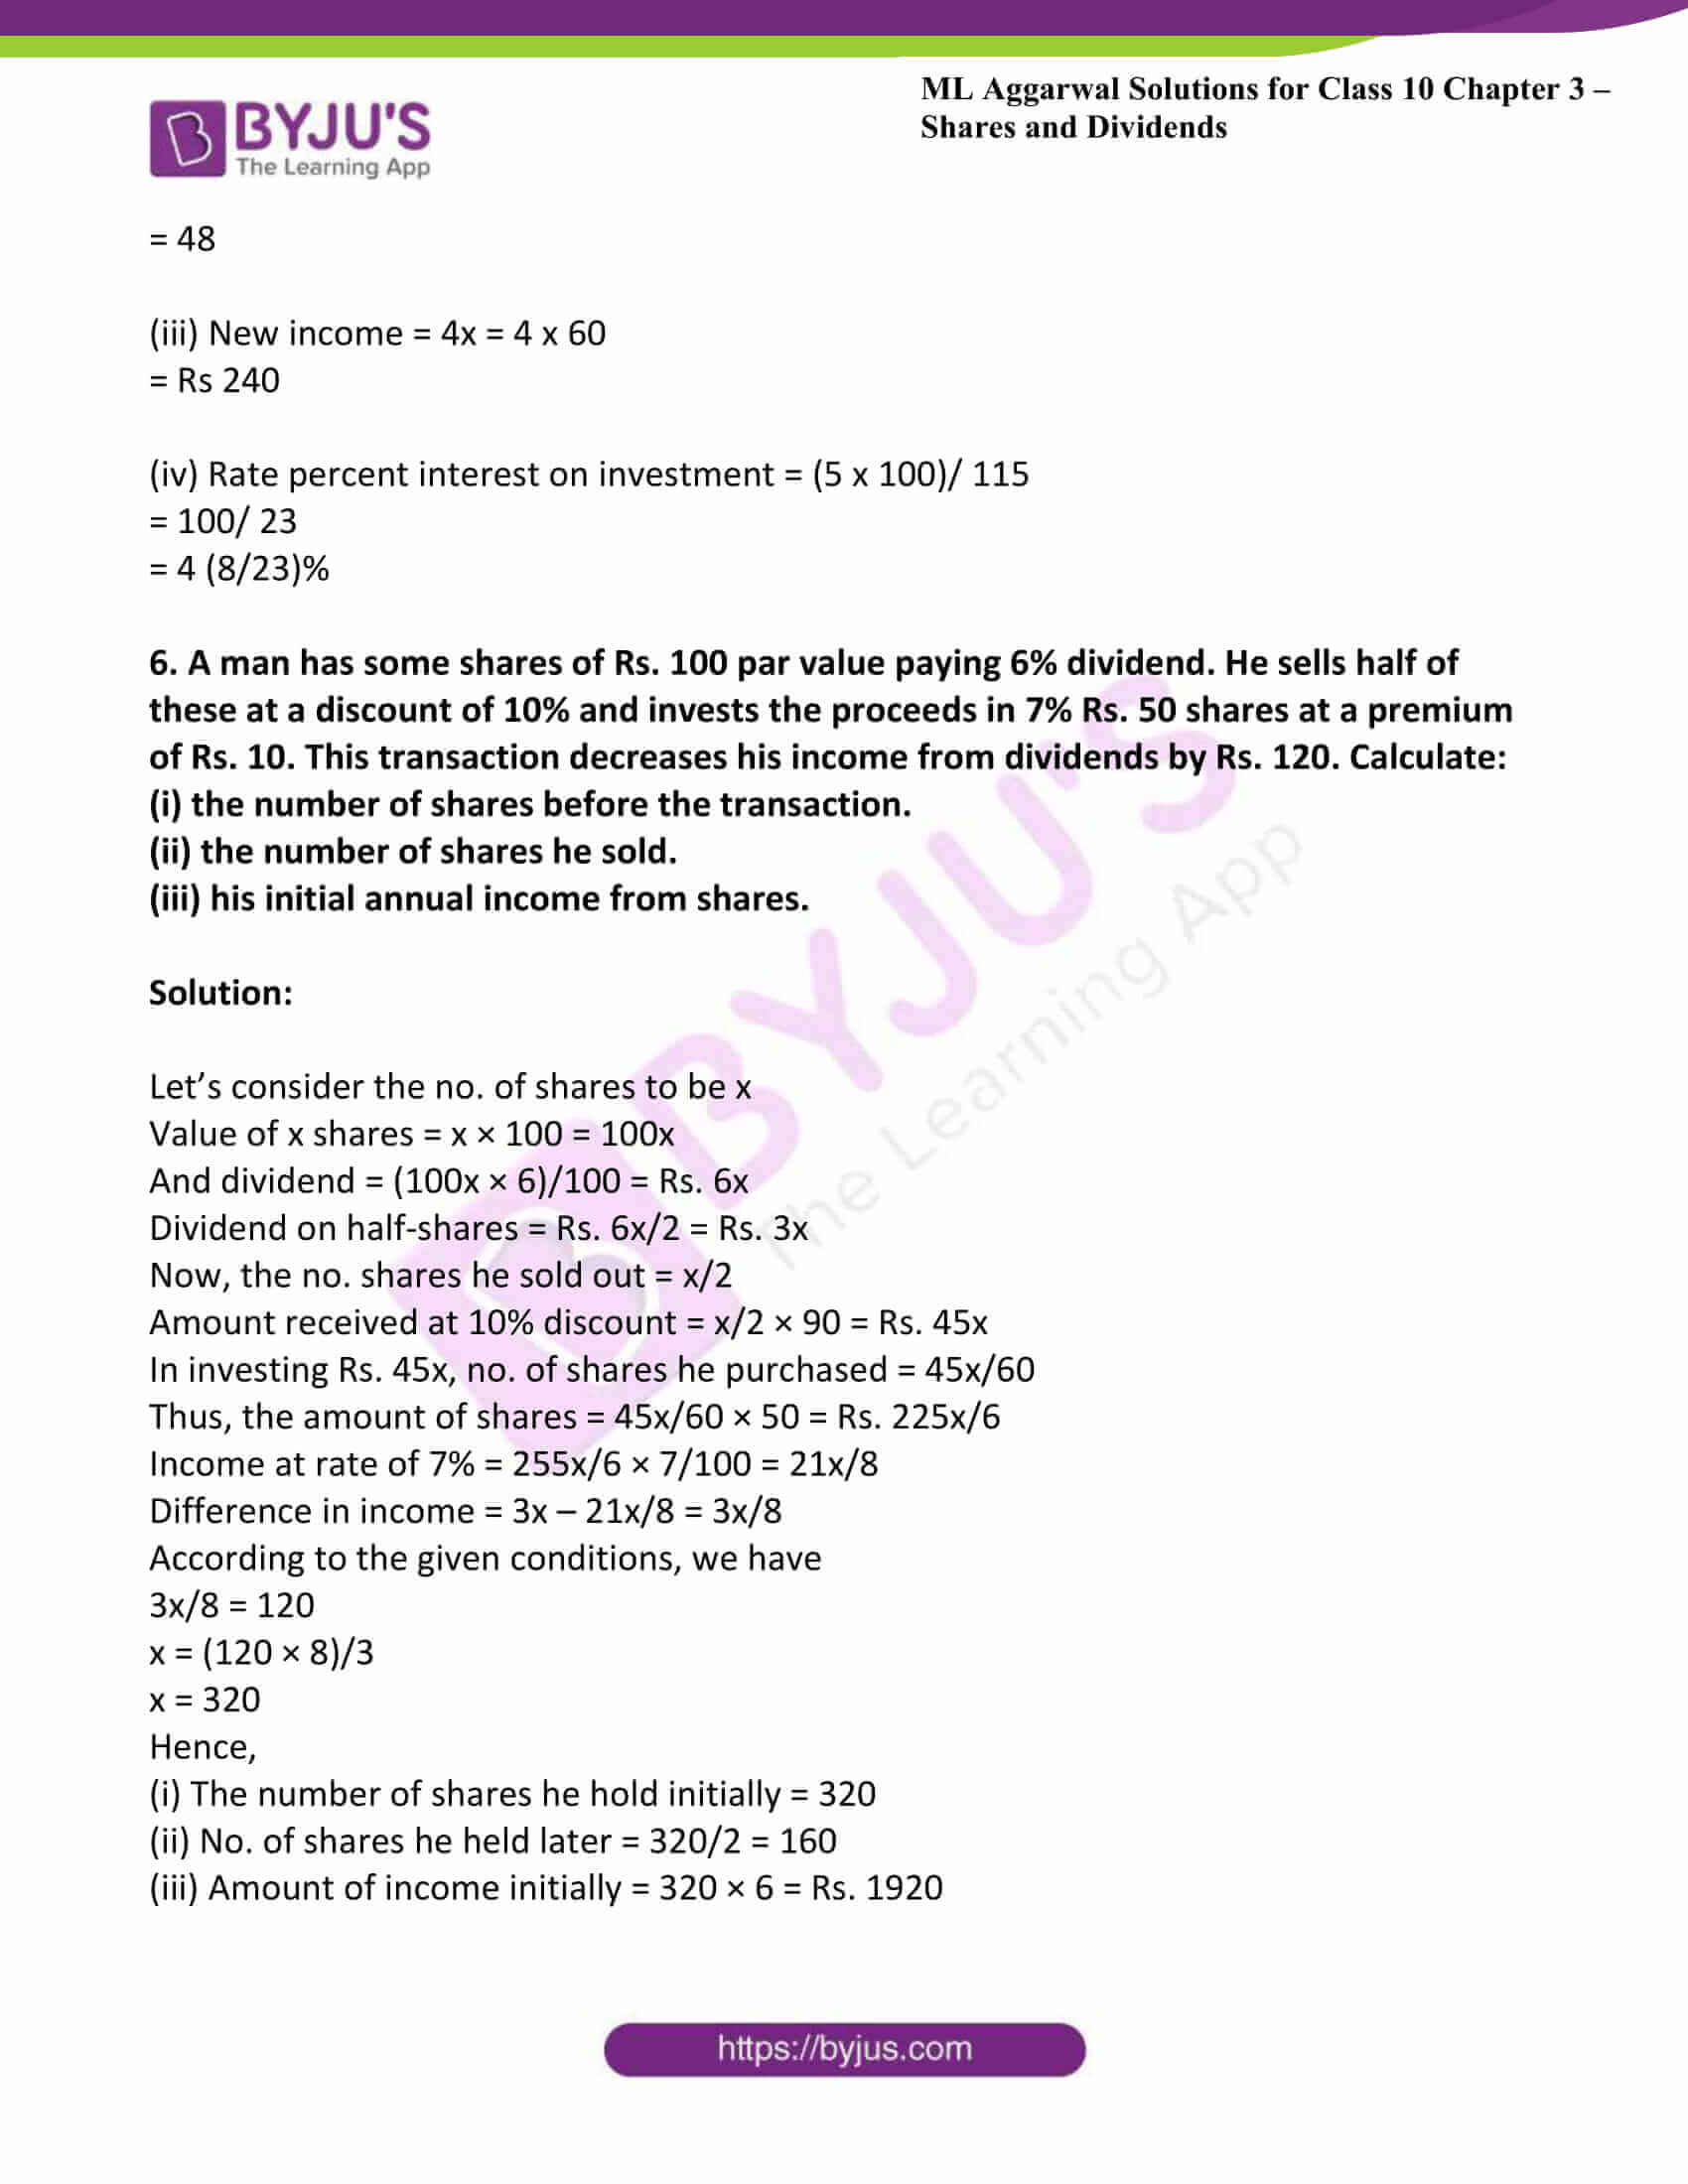 ml aggarwal solutions class 10 maths chapter 3 20